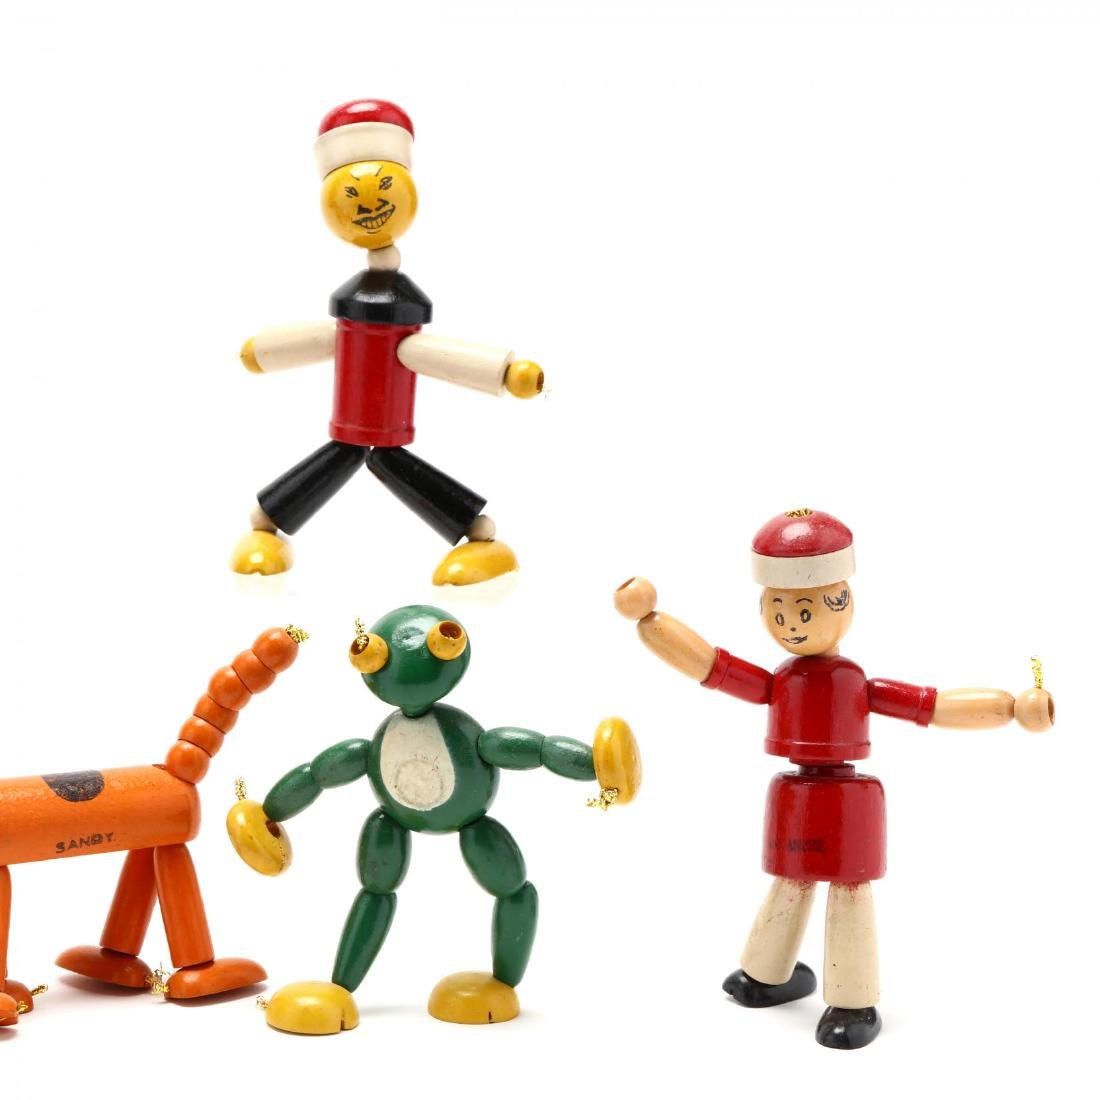 A Group of Articulated Wooden Toys - 4